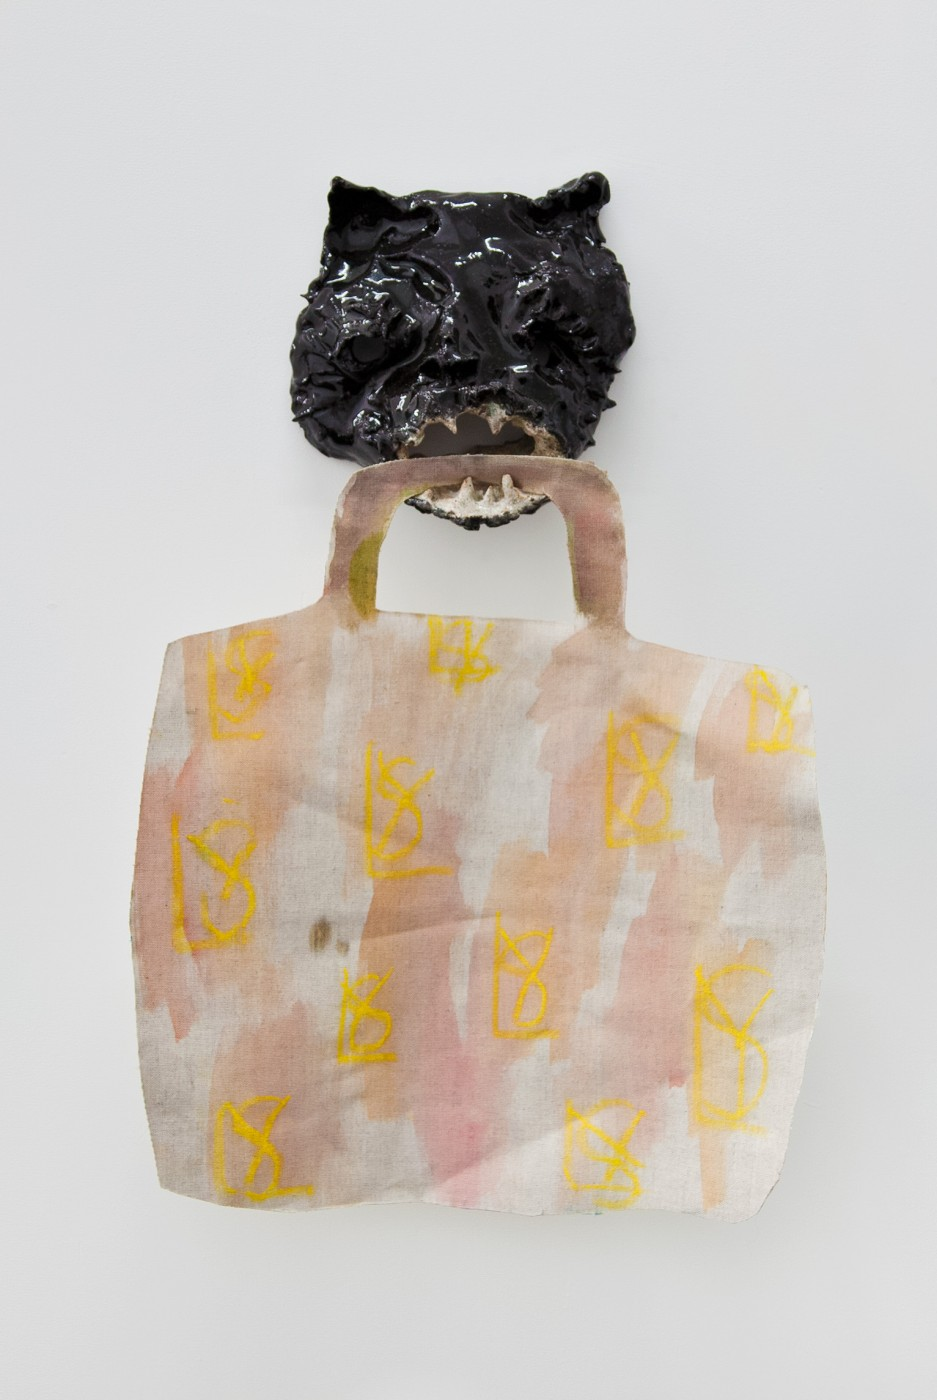 ♥ Laure Prouvost and Tom Humphreys,  Untitled , 2012   Glazed ceramic, acrylic on canvas, metal wire   Variable dimensions OLGA BALEMA 